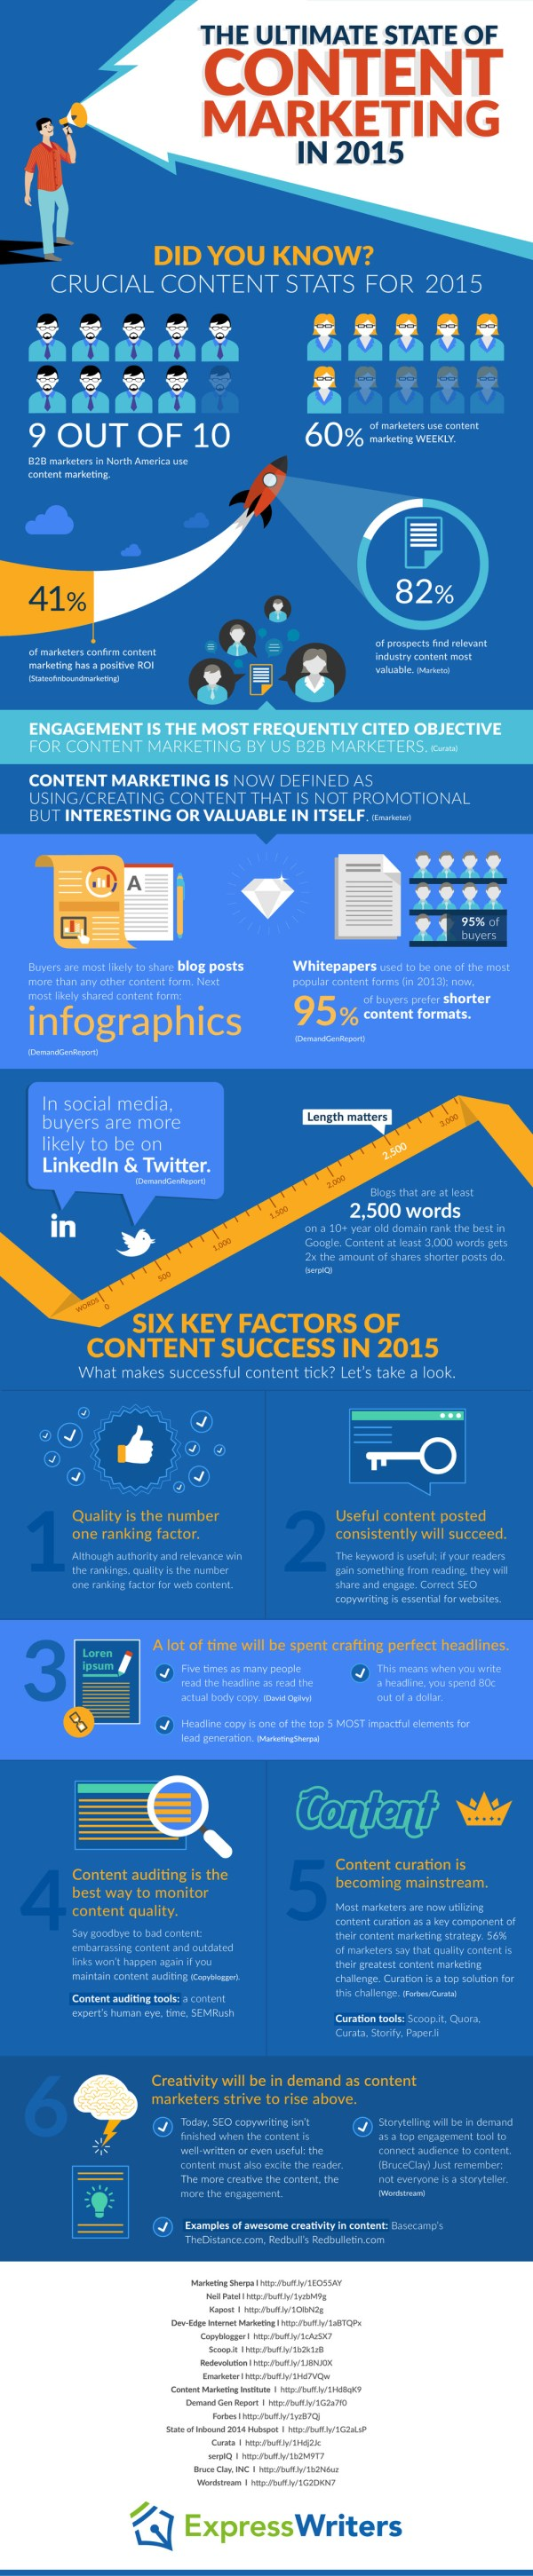 State Of Content Marketing 2015 Trends And